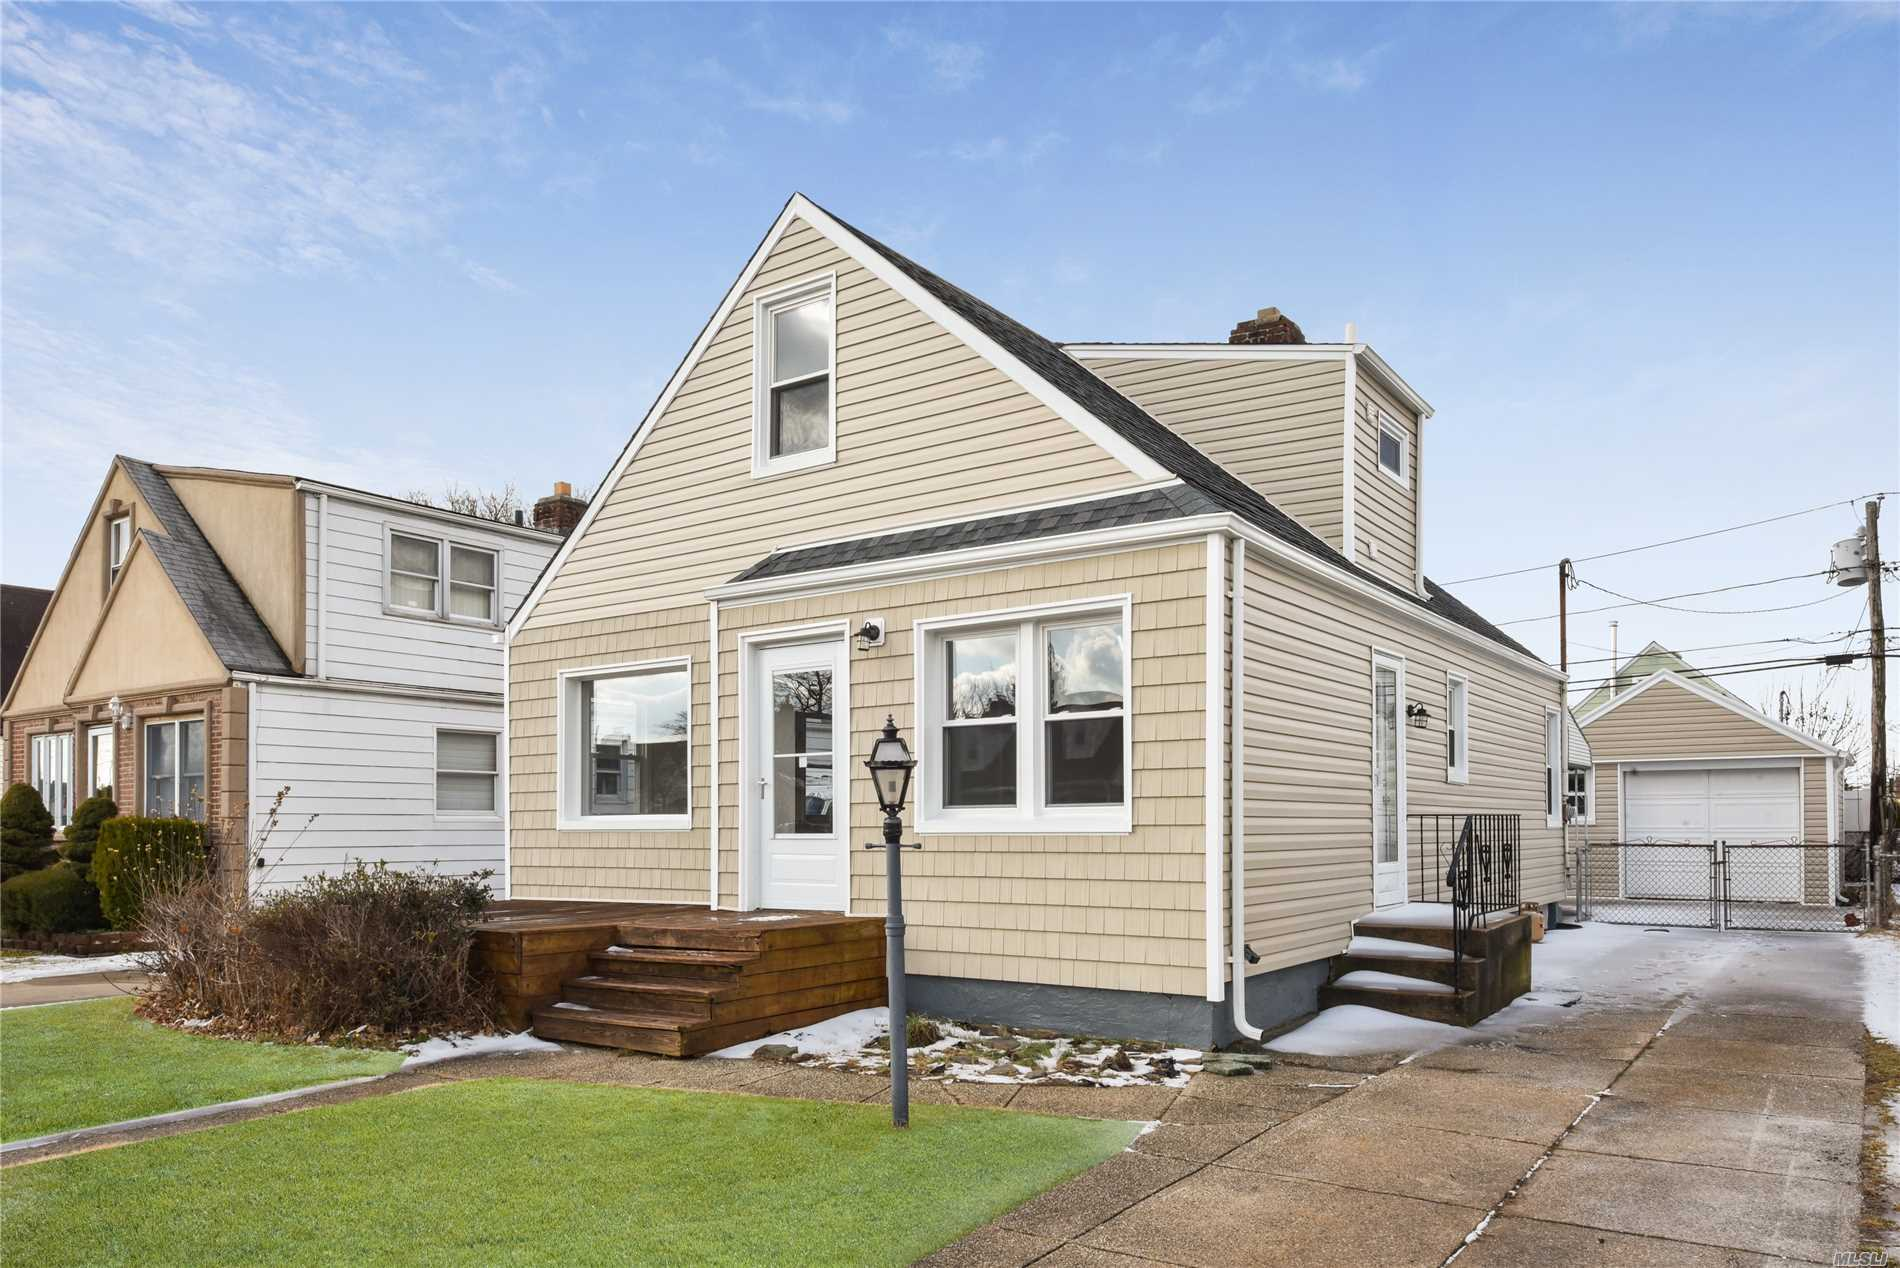 Elmont. Beautifully Renovated House, New Siding, New Kitchen, New Appliances, New Bathrooms, New Windows, Open And Bright. Great Location. Near Everything.